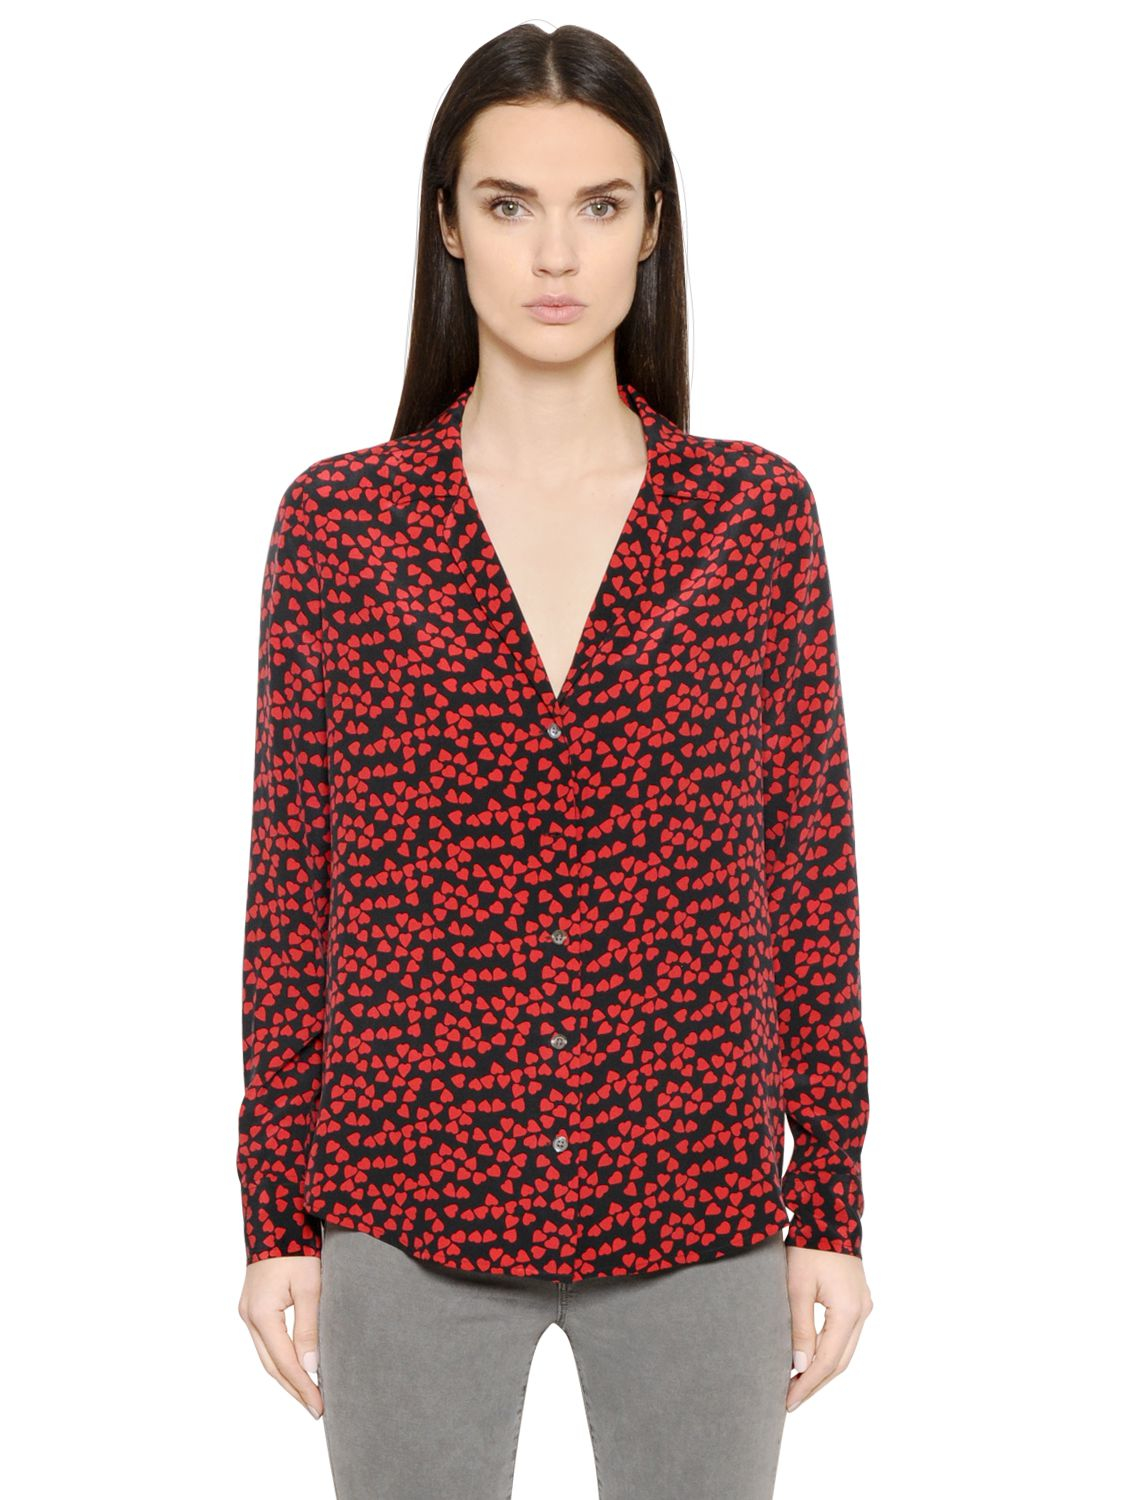 Tommy Hilfiger Shirts For Women